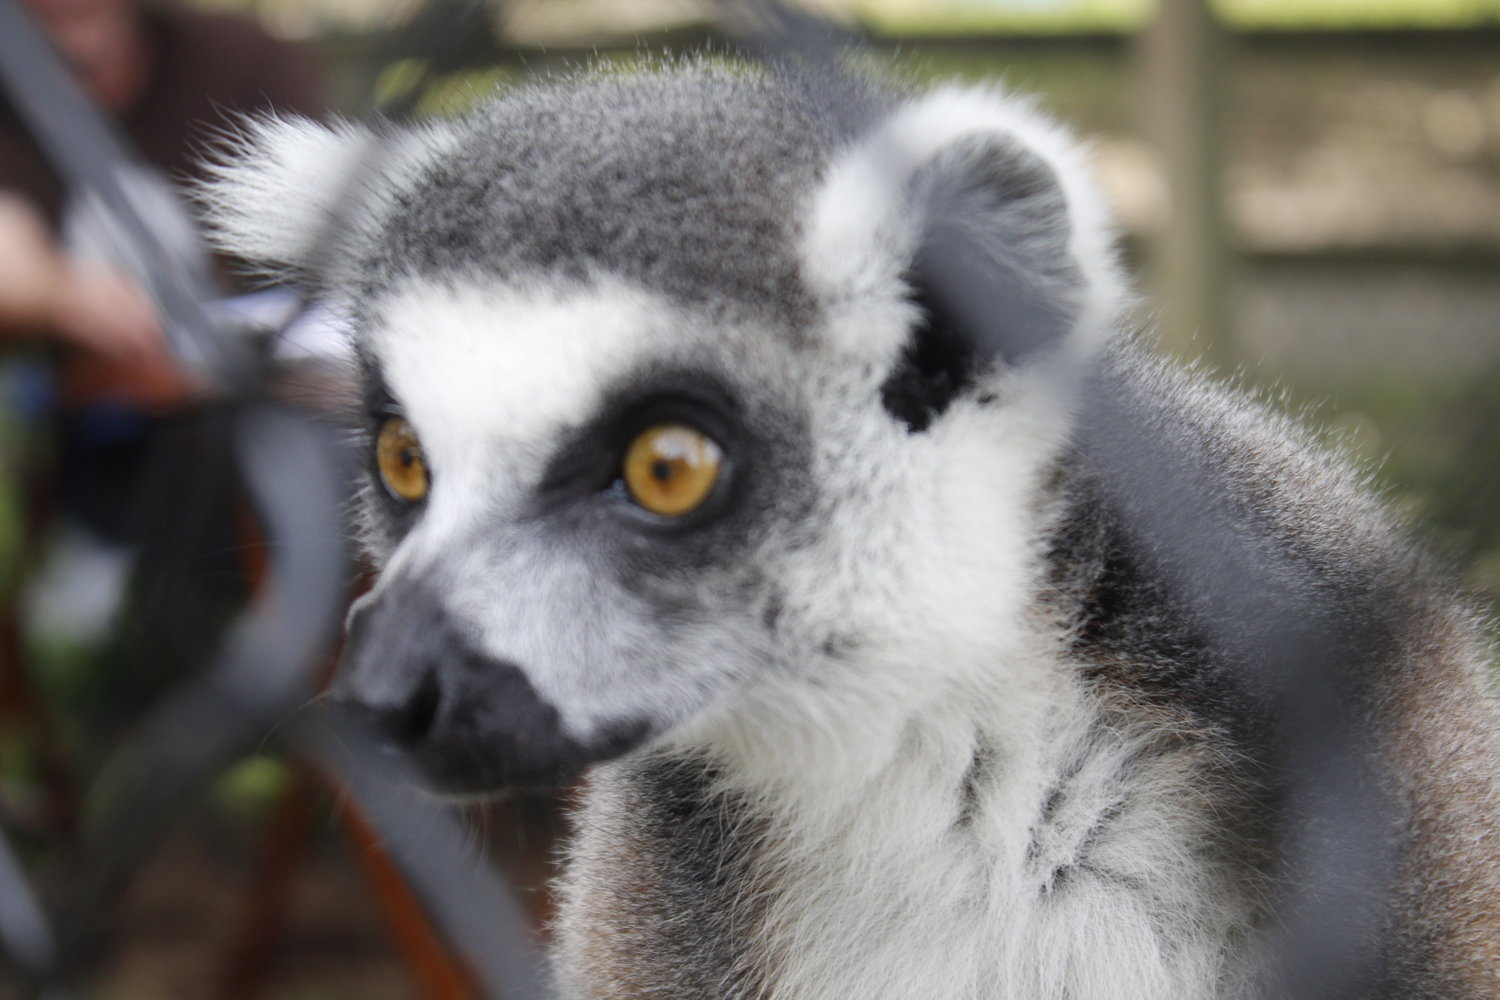 Ring-tailed lemurs are primates native to Madagascar. According to the LI Game Farm, these lemurs can reach 17.75 inches in size (21.75 inches with the tail) and weigh between five to 7.5 pounds.